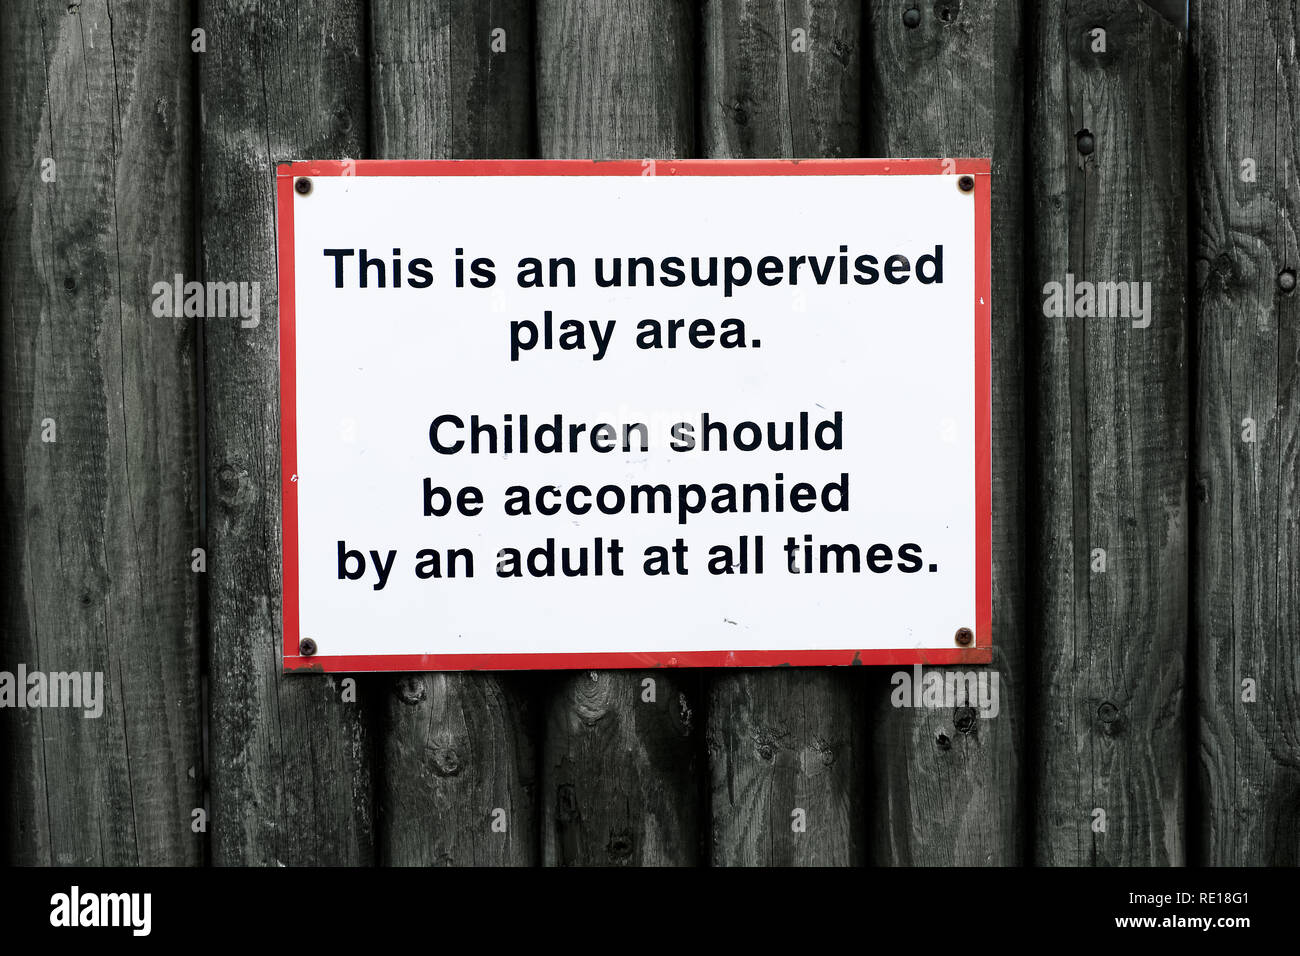 Children play area unsupervised accompanied by adult all times - Stock Image